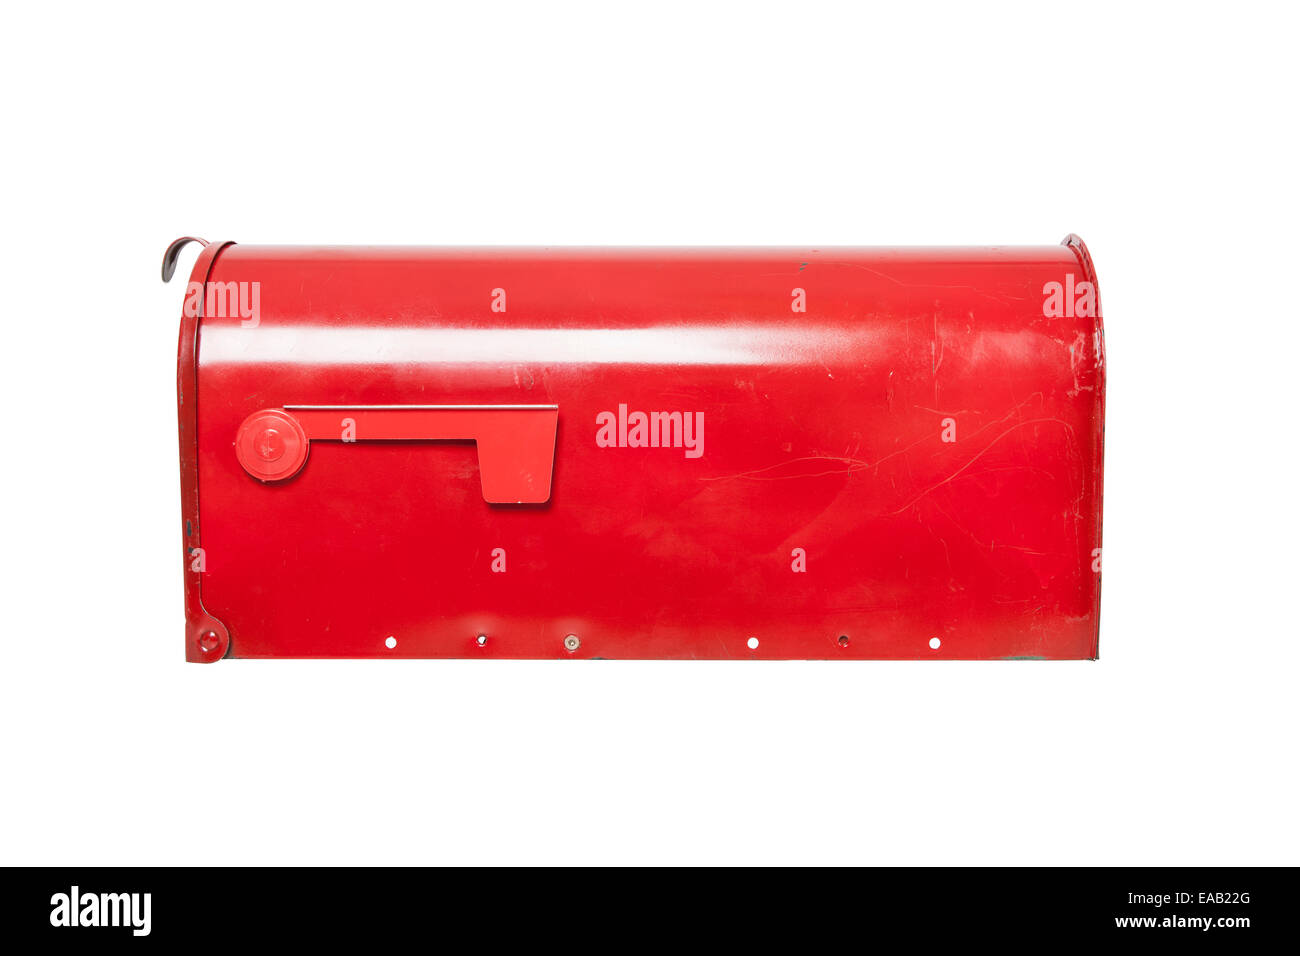 Retro mailbox on white with flag in lowered position - Stock Image